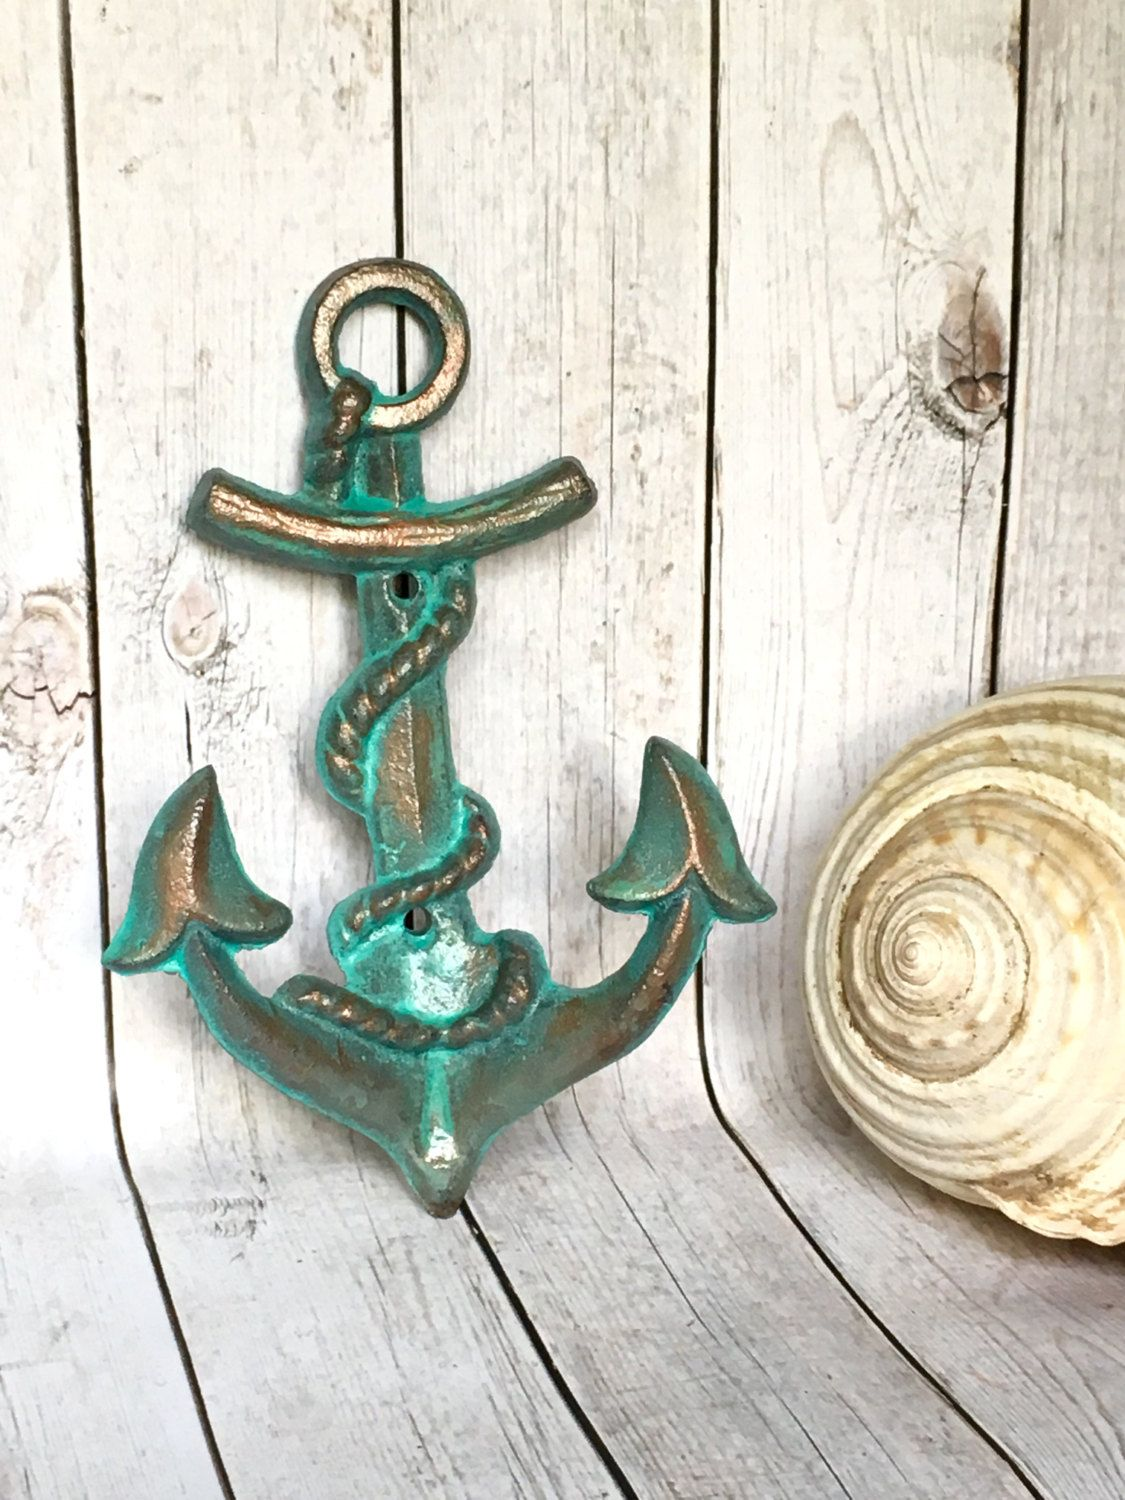 Anchor wall decor - wall hook in a water worn, copper patina finish. Hand painted turquoise and accented with a copper metallic glaze.